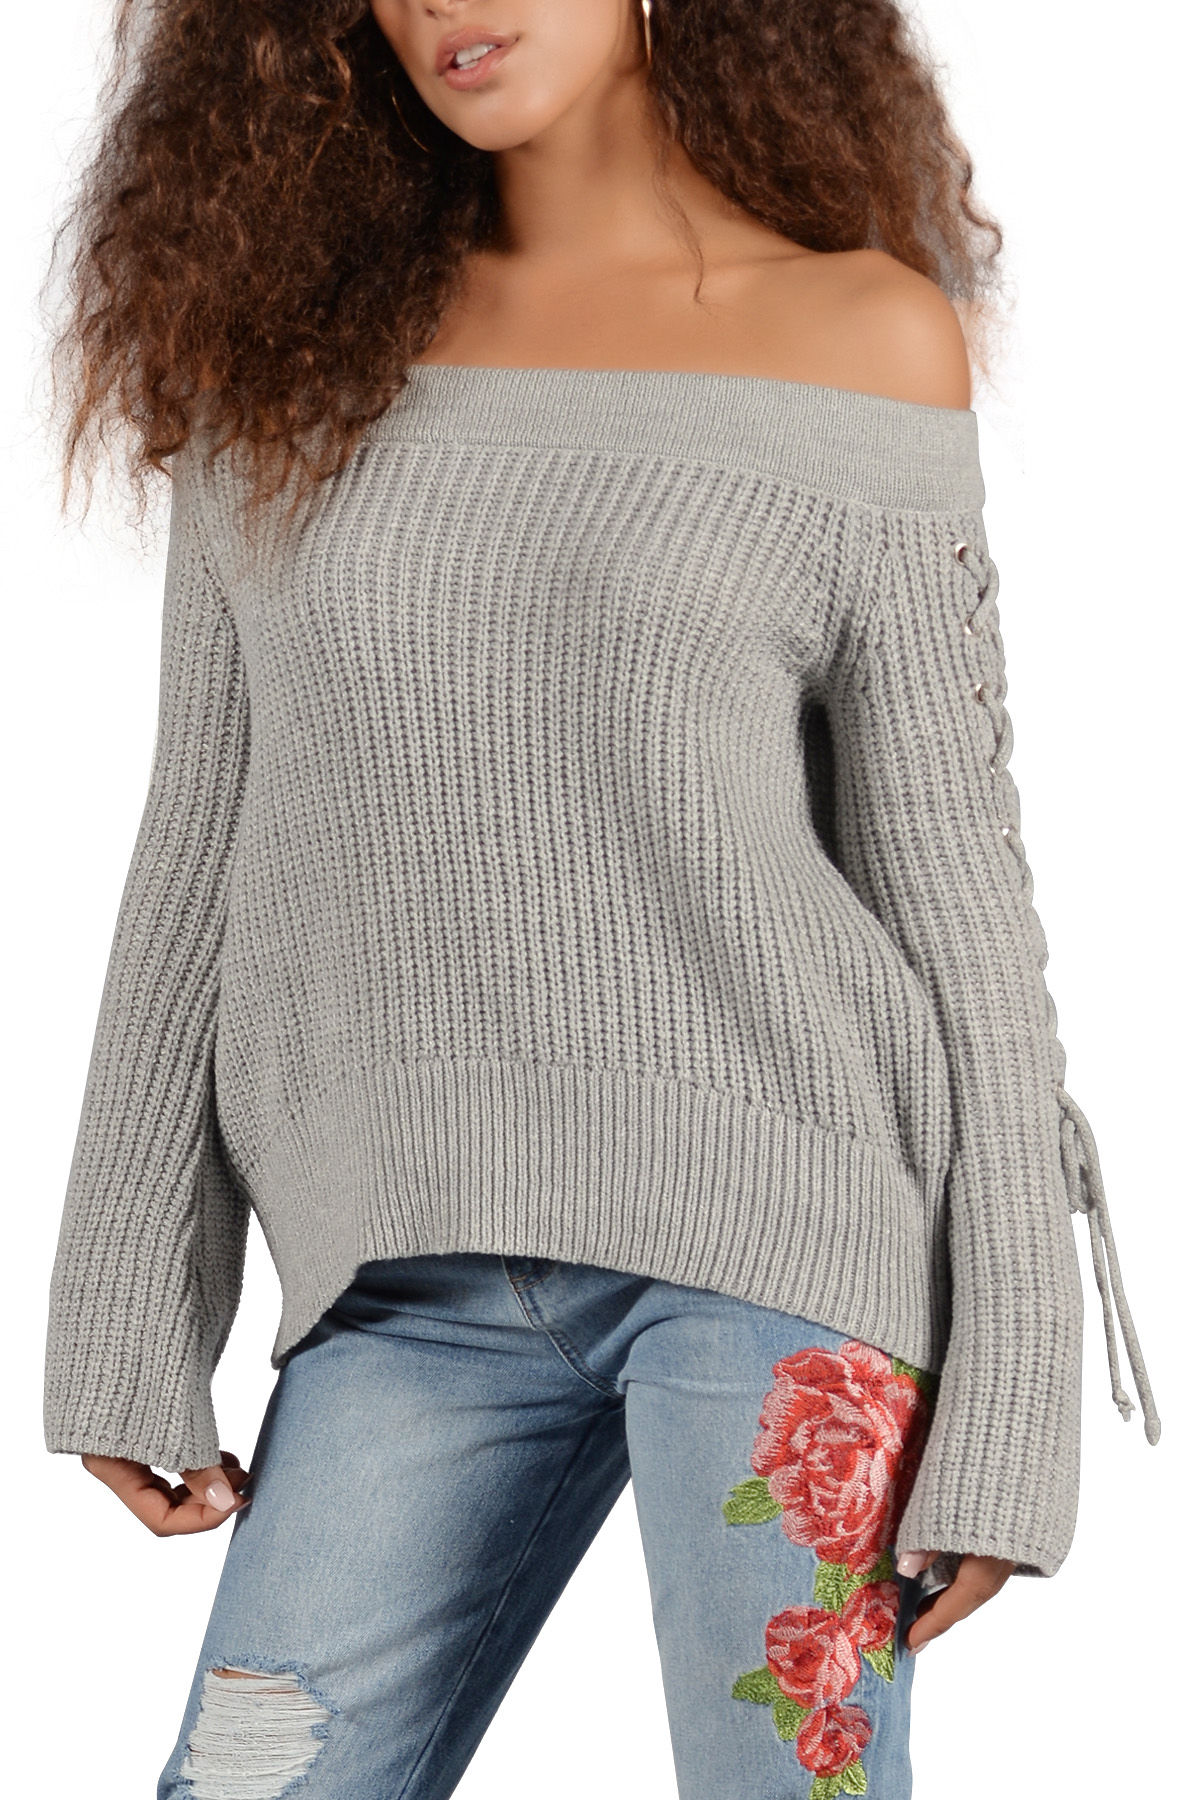 Off the Shoulder Knit Sweater with Lace Up Sleeves in Heather Grey